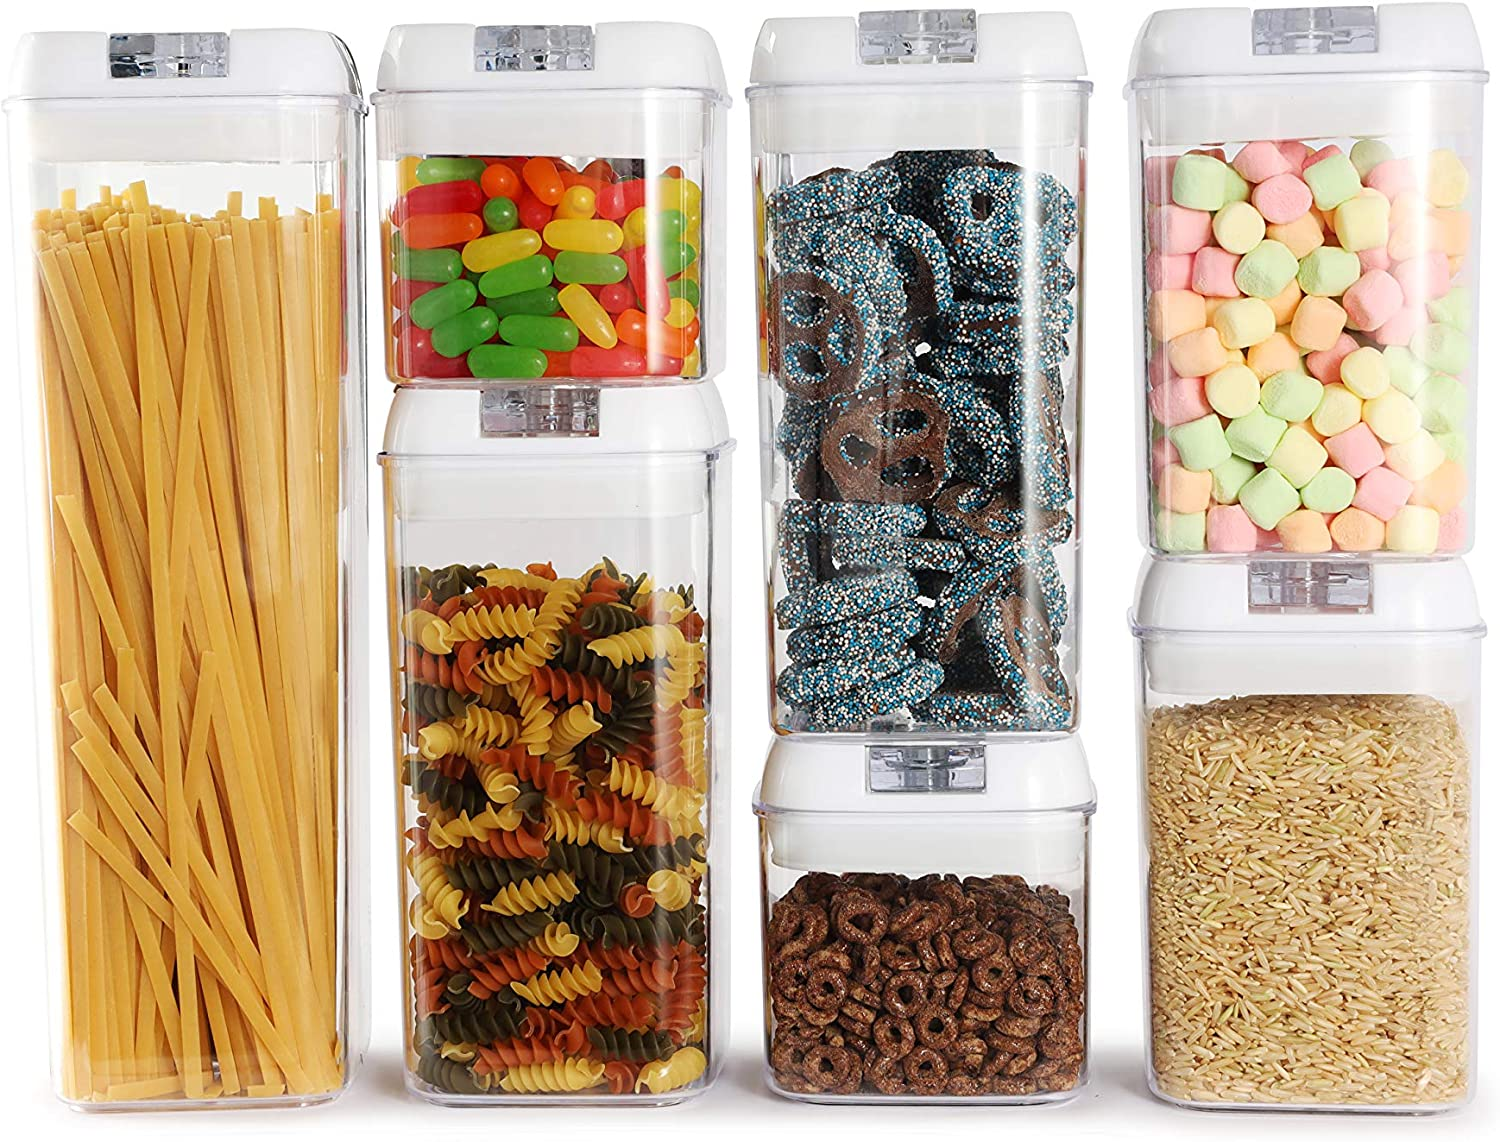 Airtight Food Storage Containers with Lids | 7 Plastic Kitchen Canisters for Pantry Organization and Storage | BPA Free Air Tight Container Dispenser With Labels, Markers and Measuring Spoons